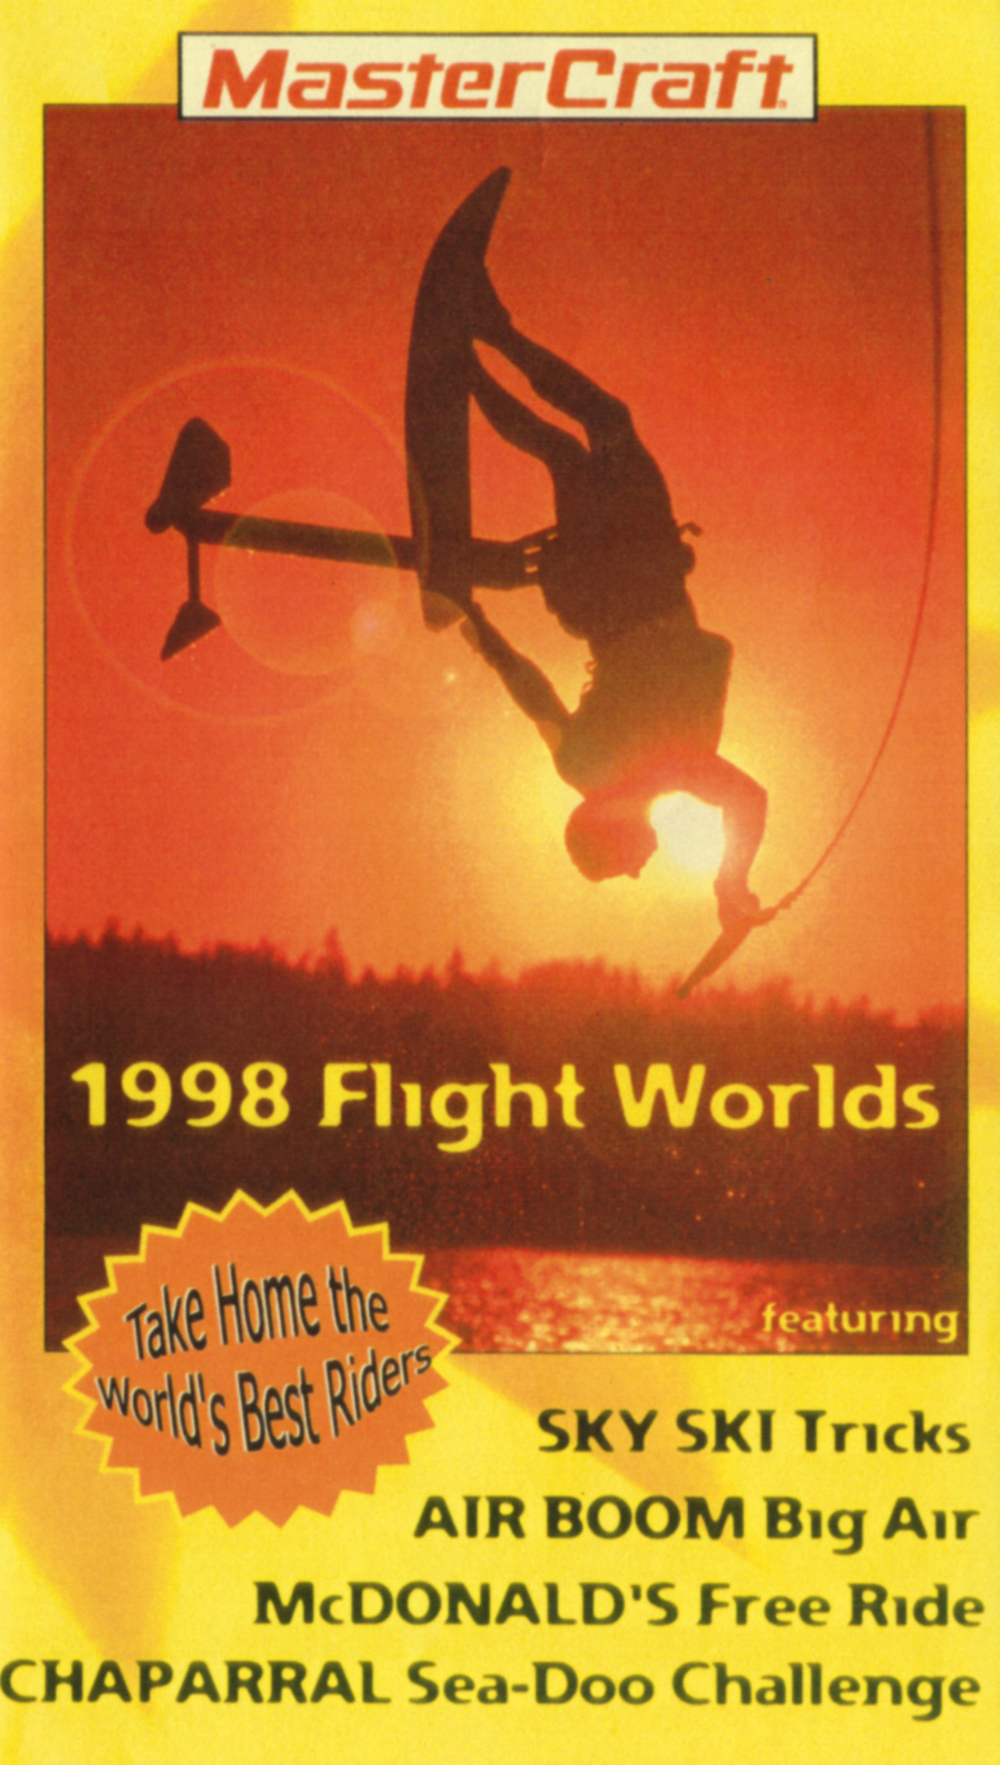 adventures-water-skiing-hydrofoiling-flight-worlds-video-cover-kevin-thayer-2